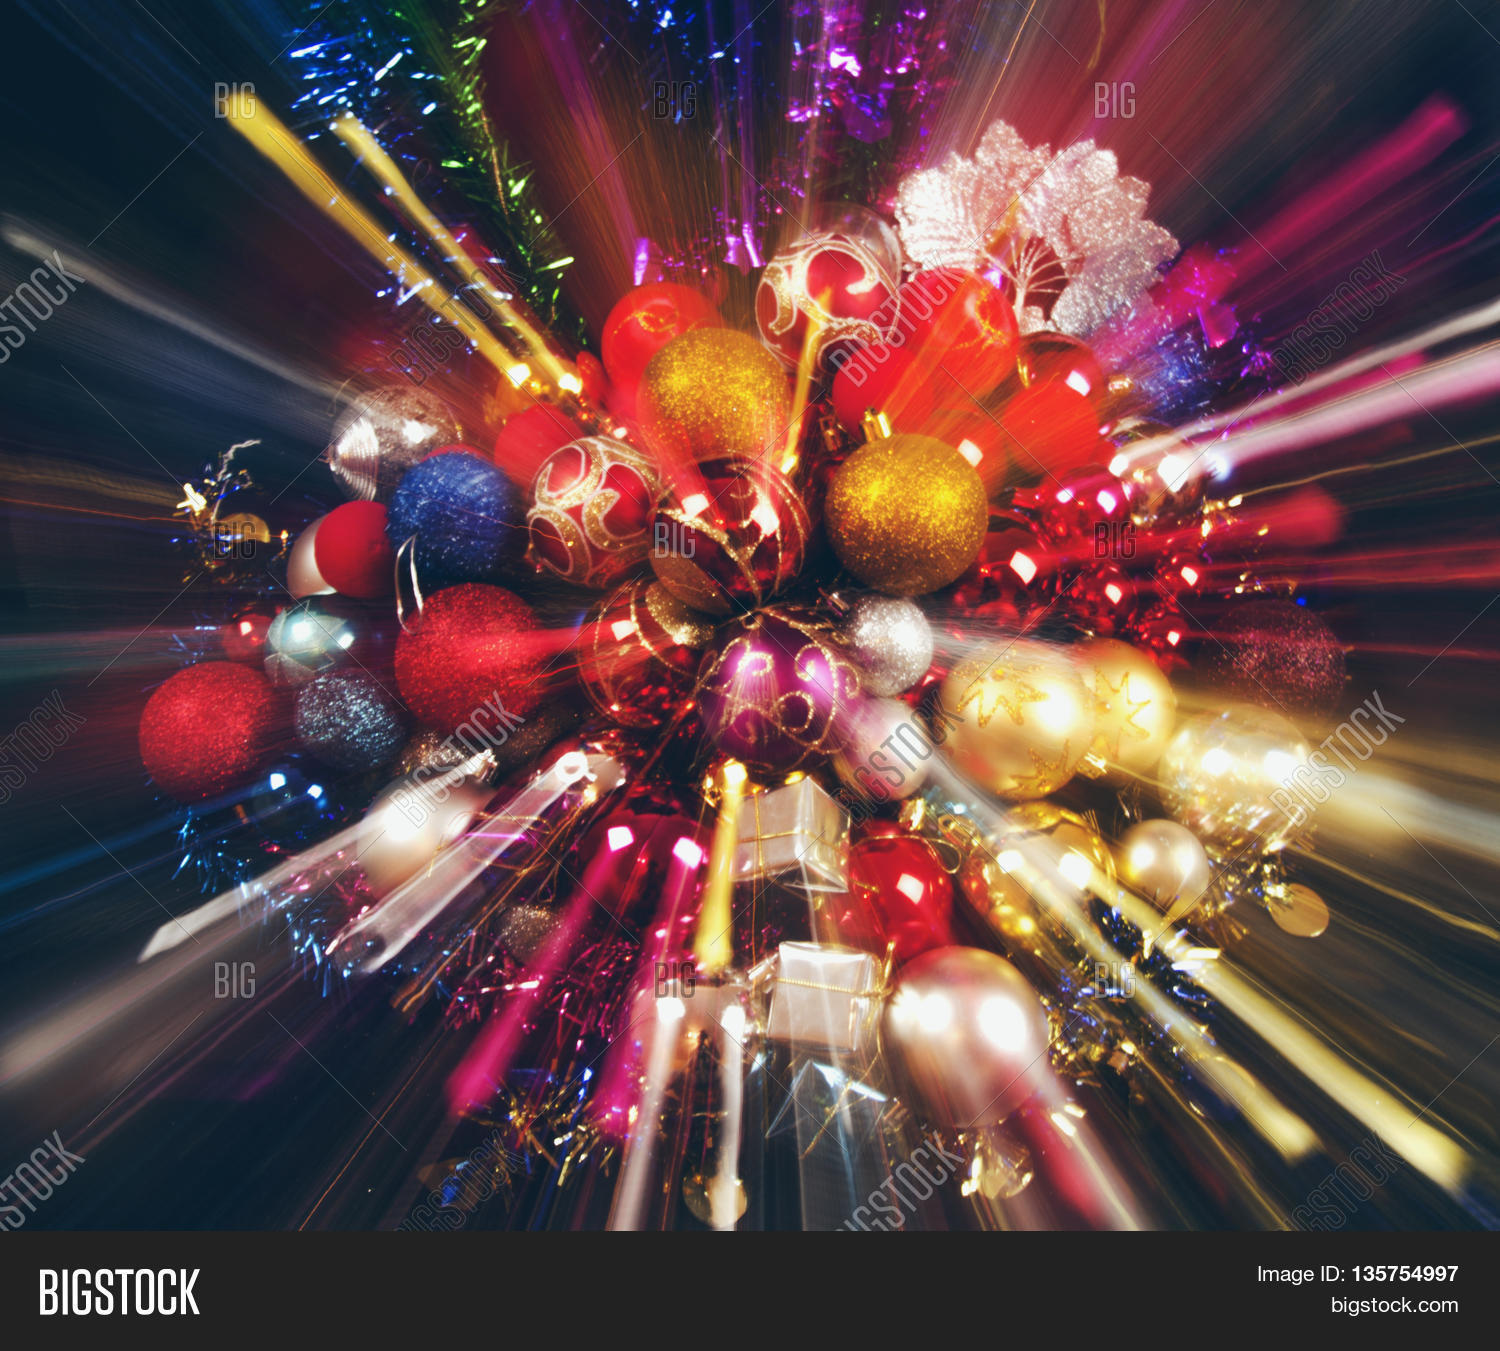 colorful new year decoration - photo #34